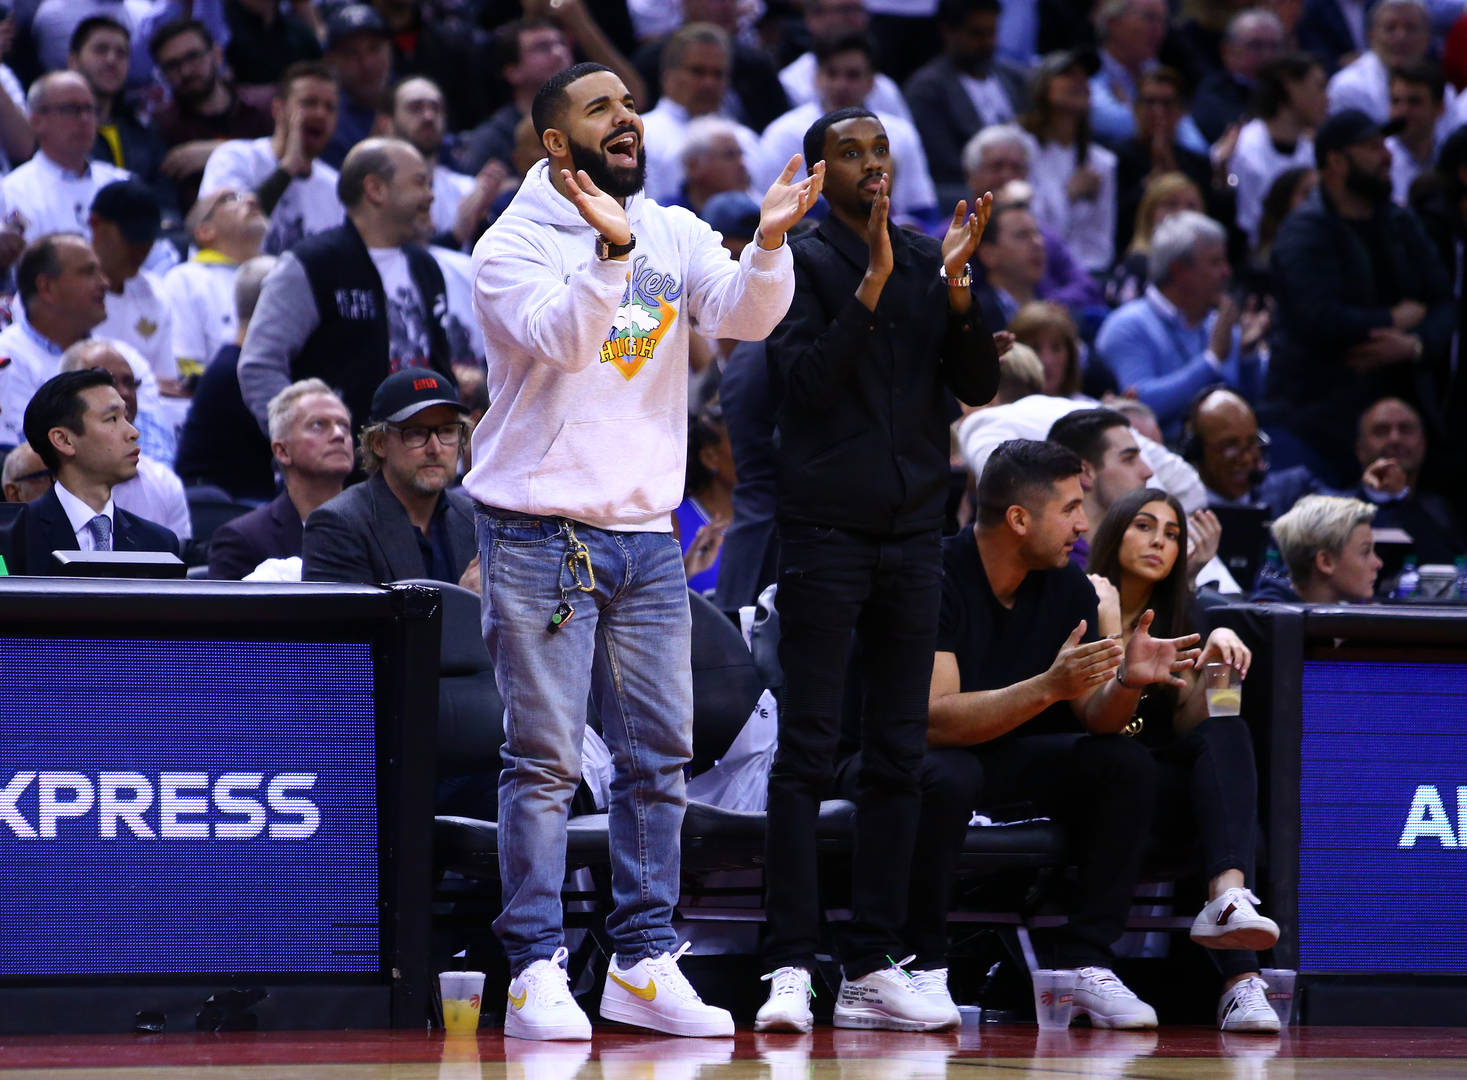 """Drake """"48 Laws of Power"""" television series Future The Prince executive produce Quibi Robert Greene author Jason Shirer Adel Nur DreamCrew production company Zack Hayden Anonymous Content Quibi streaming service short-form  mobile entertainment platform"""